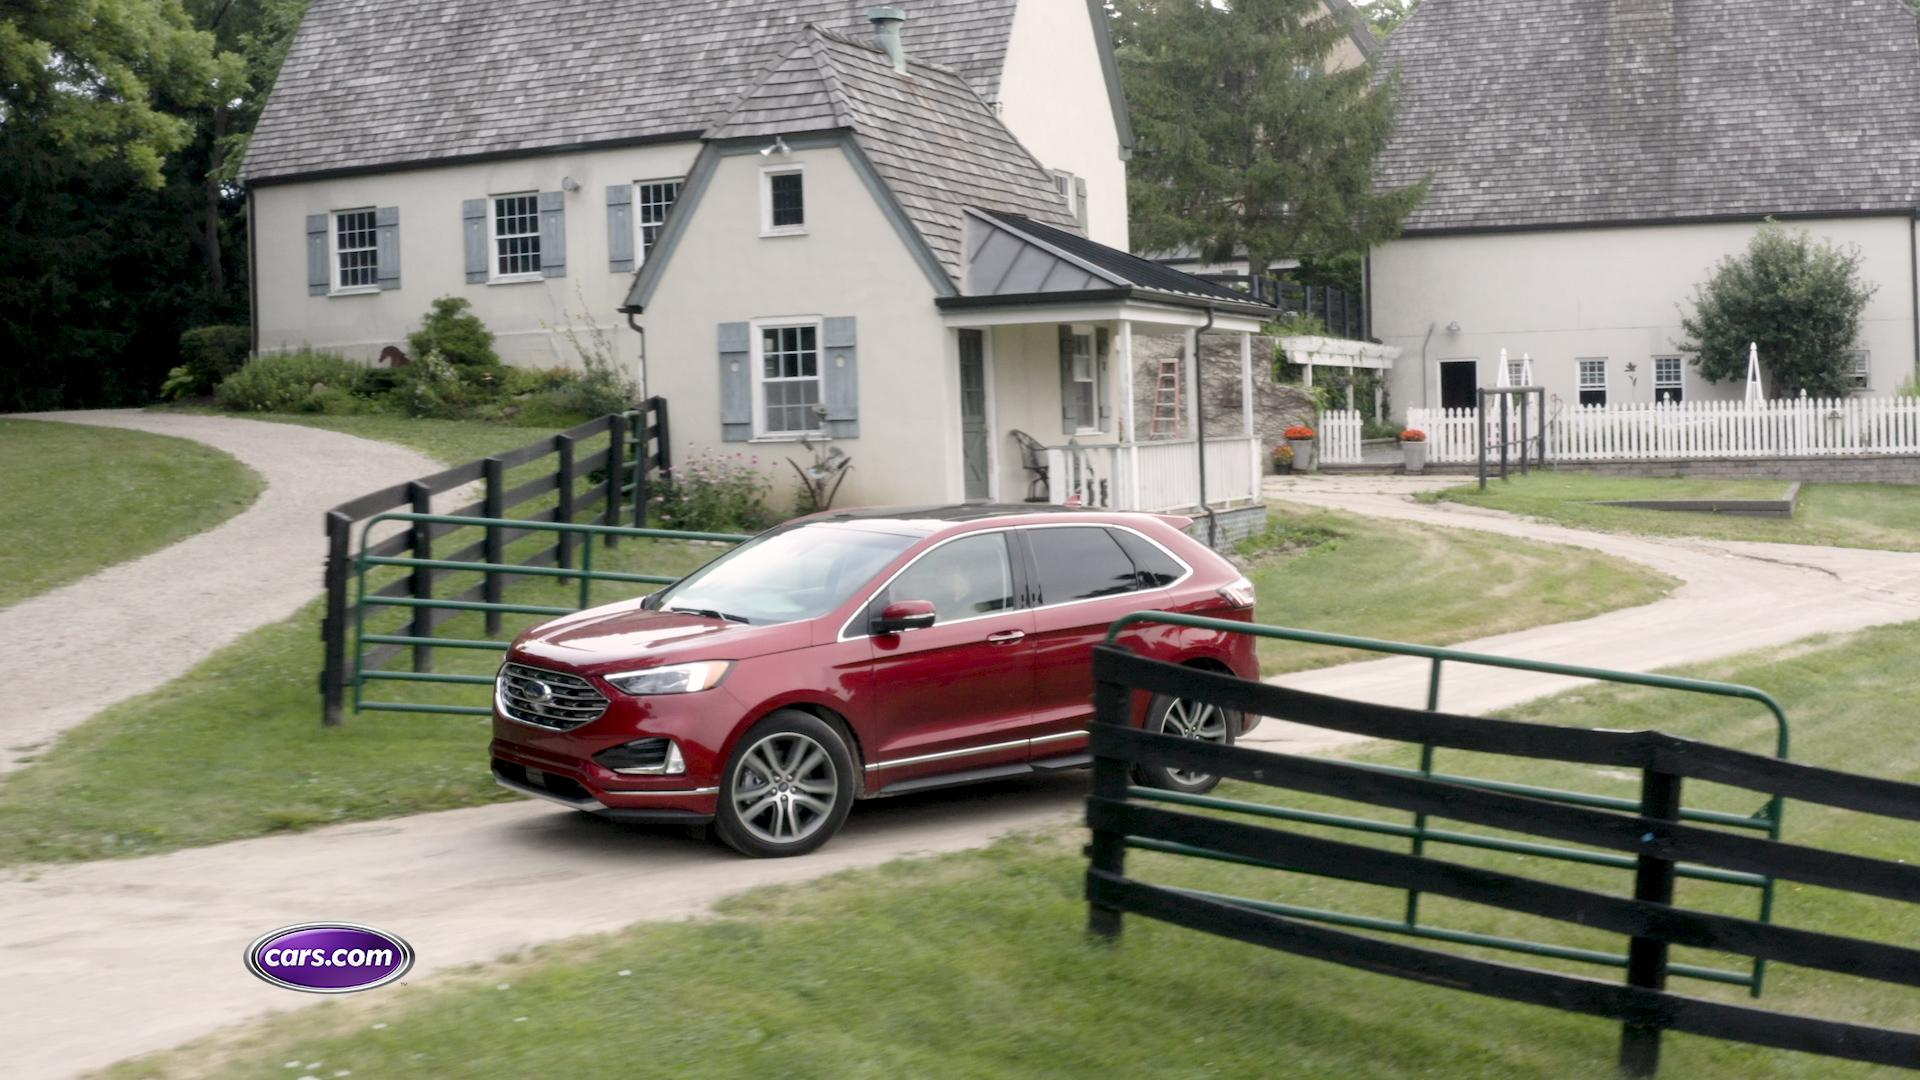 Video: 2019 Ford Edge: Review — Cars.com